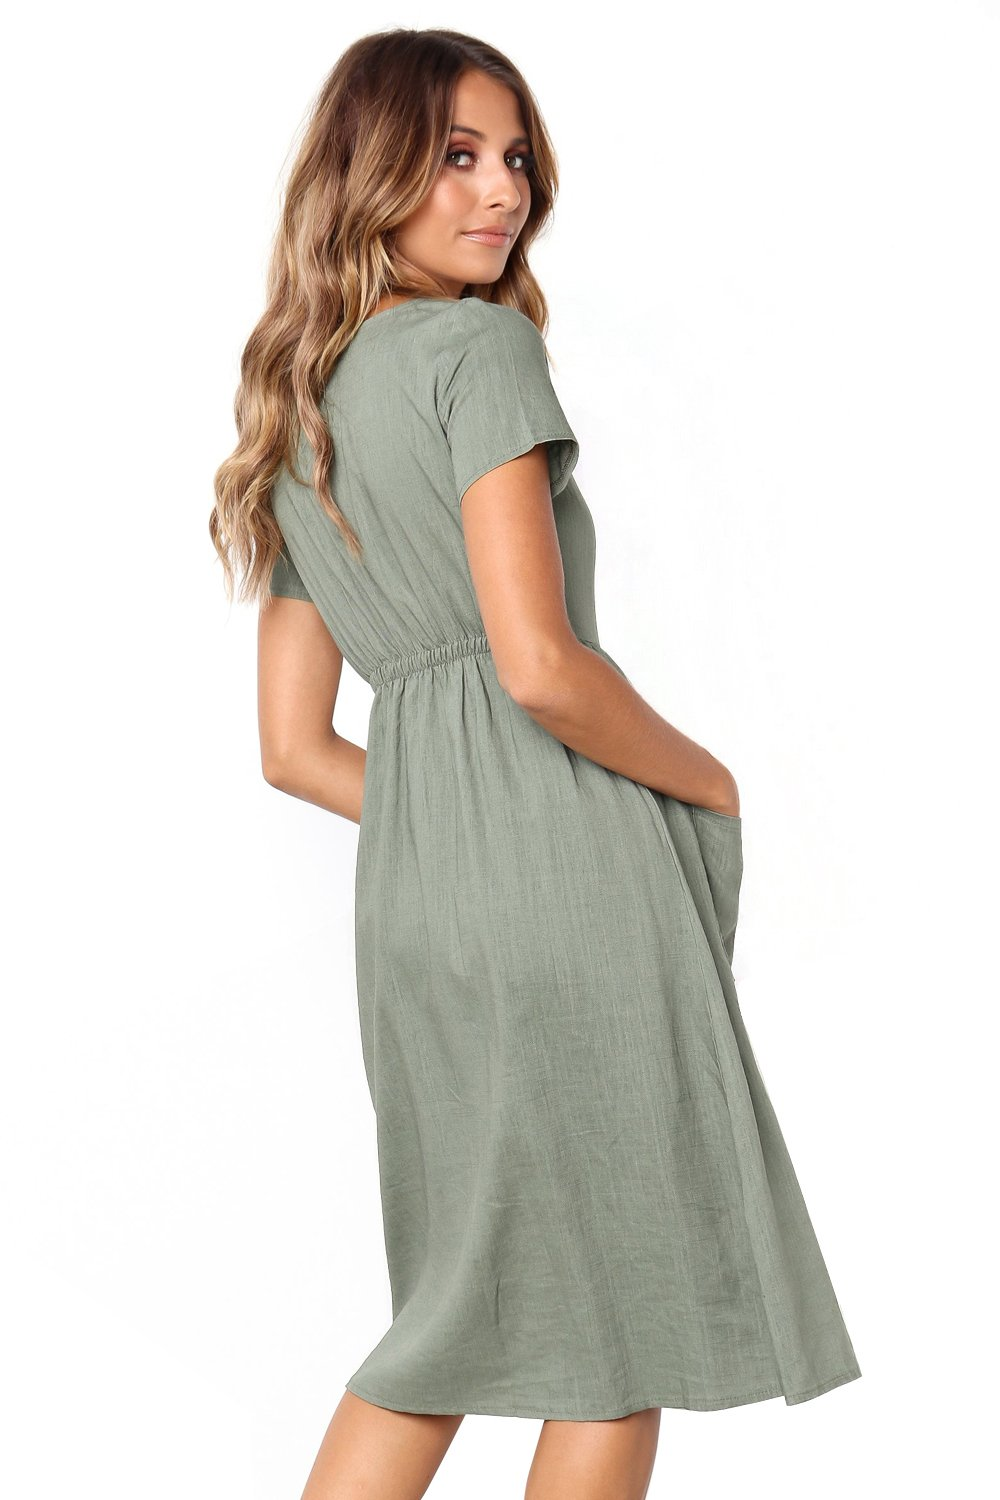 Women Clothing Designers The Best Green Stylish Button Front Midi Dress with Pockets